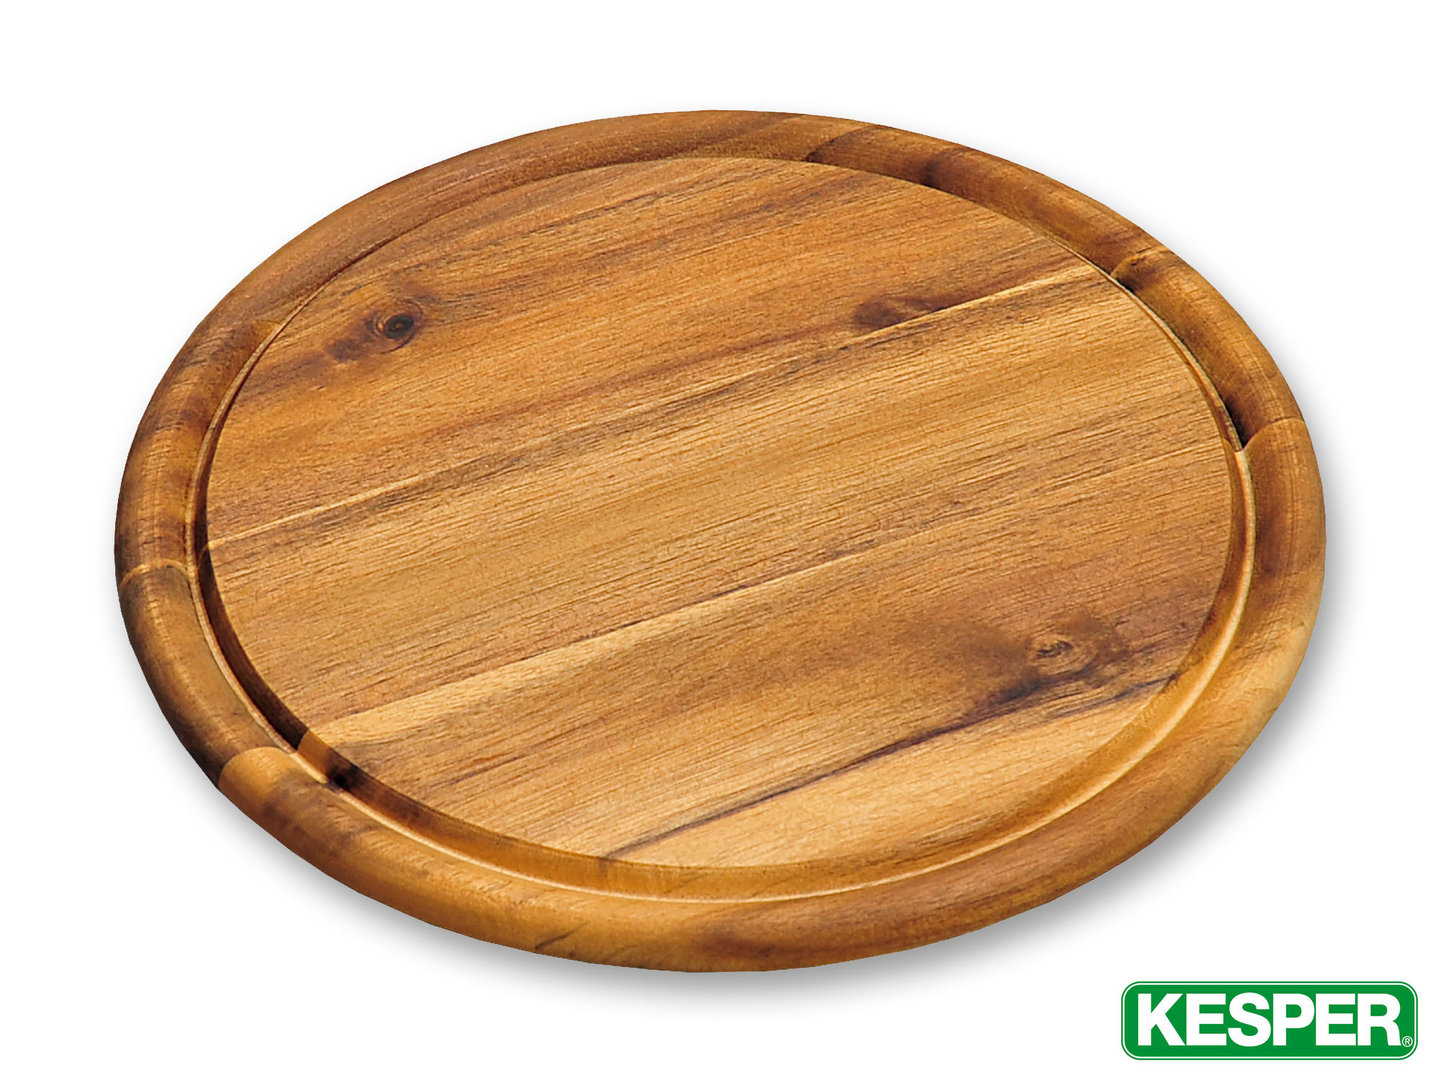 KESPER acacia wood snack plate 25 x 1,5 cm with juice rim